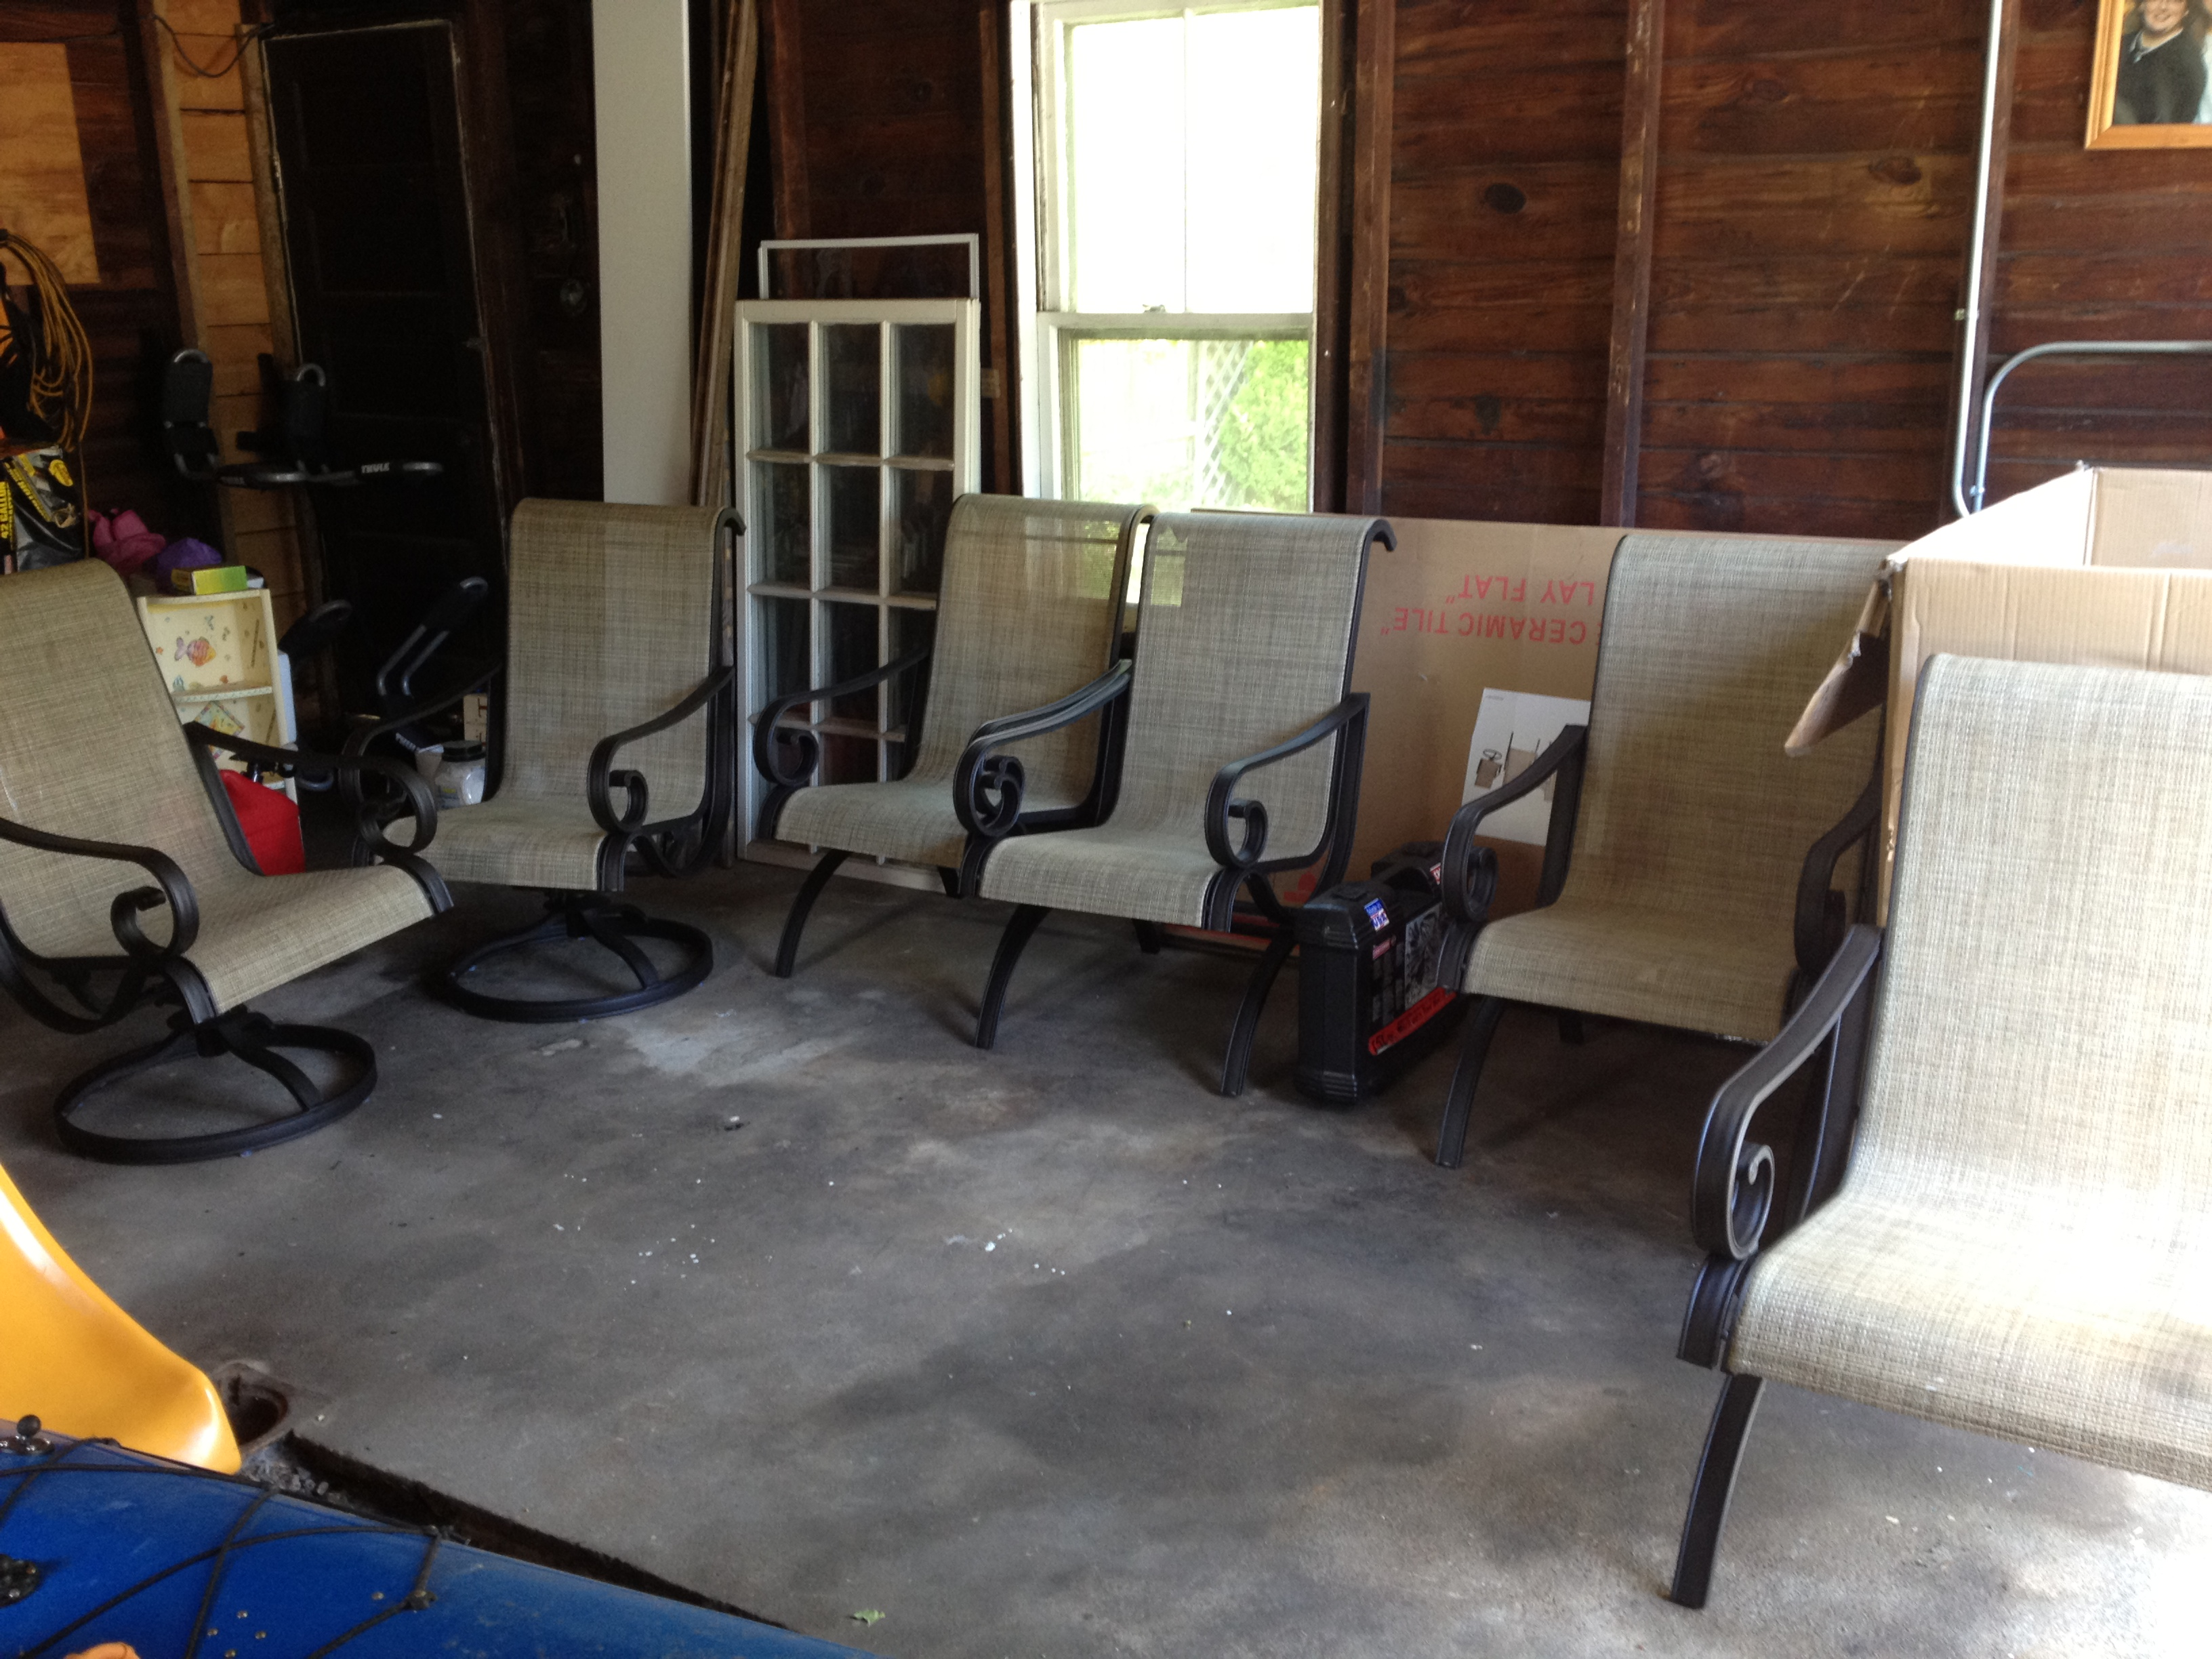 All the Chairs are done